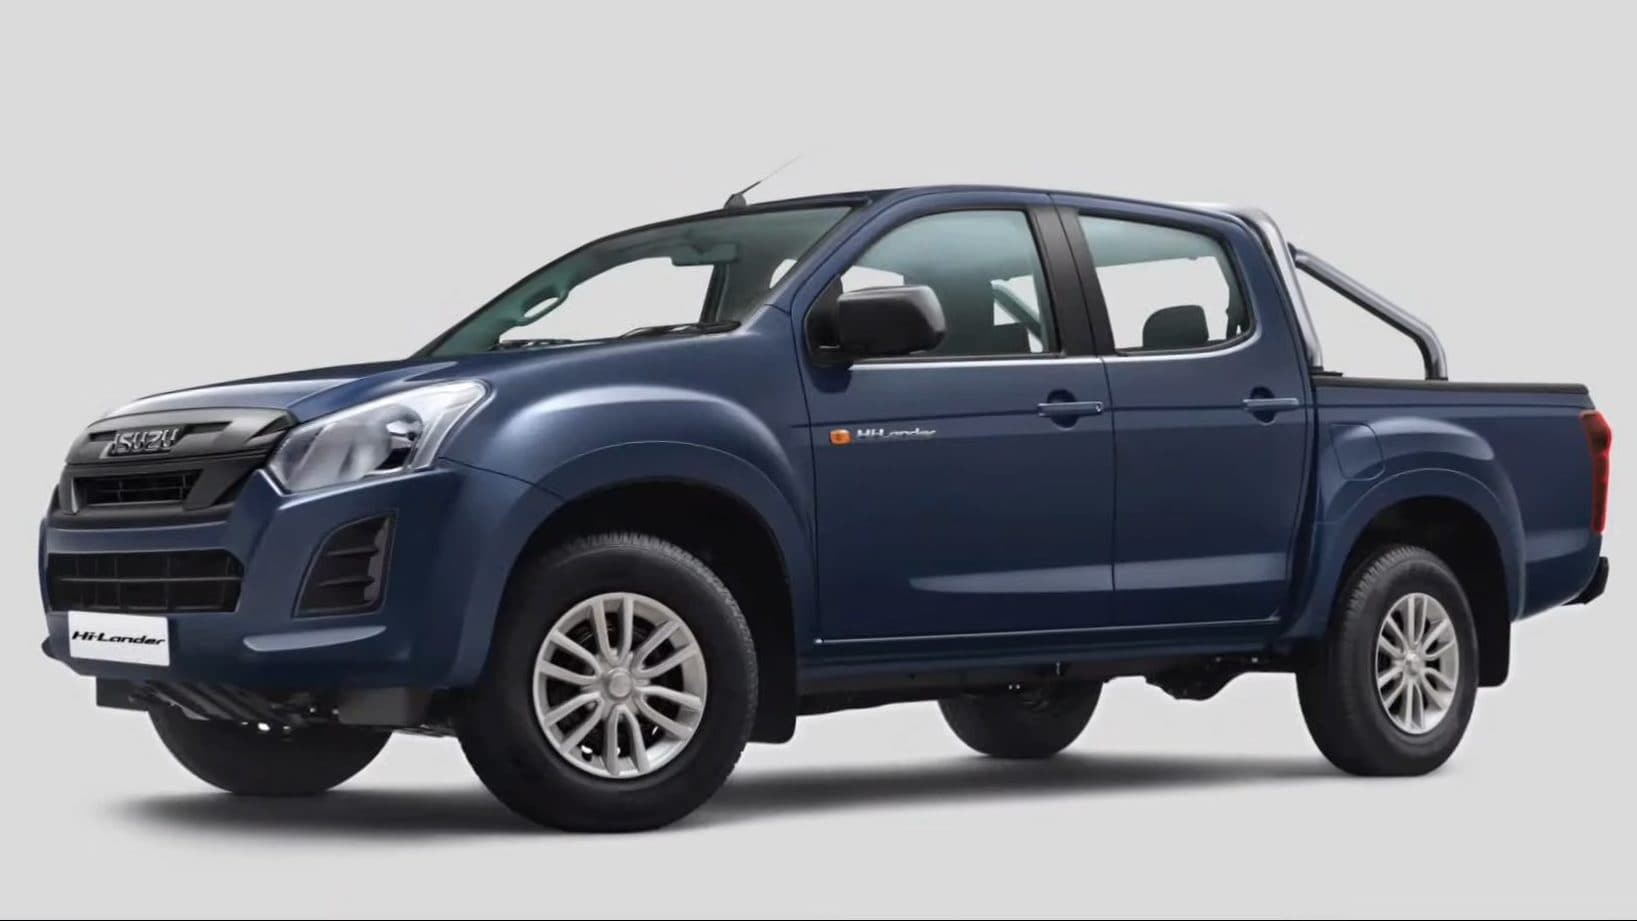 BS6 Isuzu V-Cross, V-Cross Hi-Lander launched in India, priced from Rs 16.98 lakh- Technology News, Gadgetclock